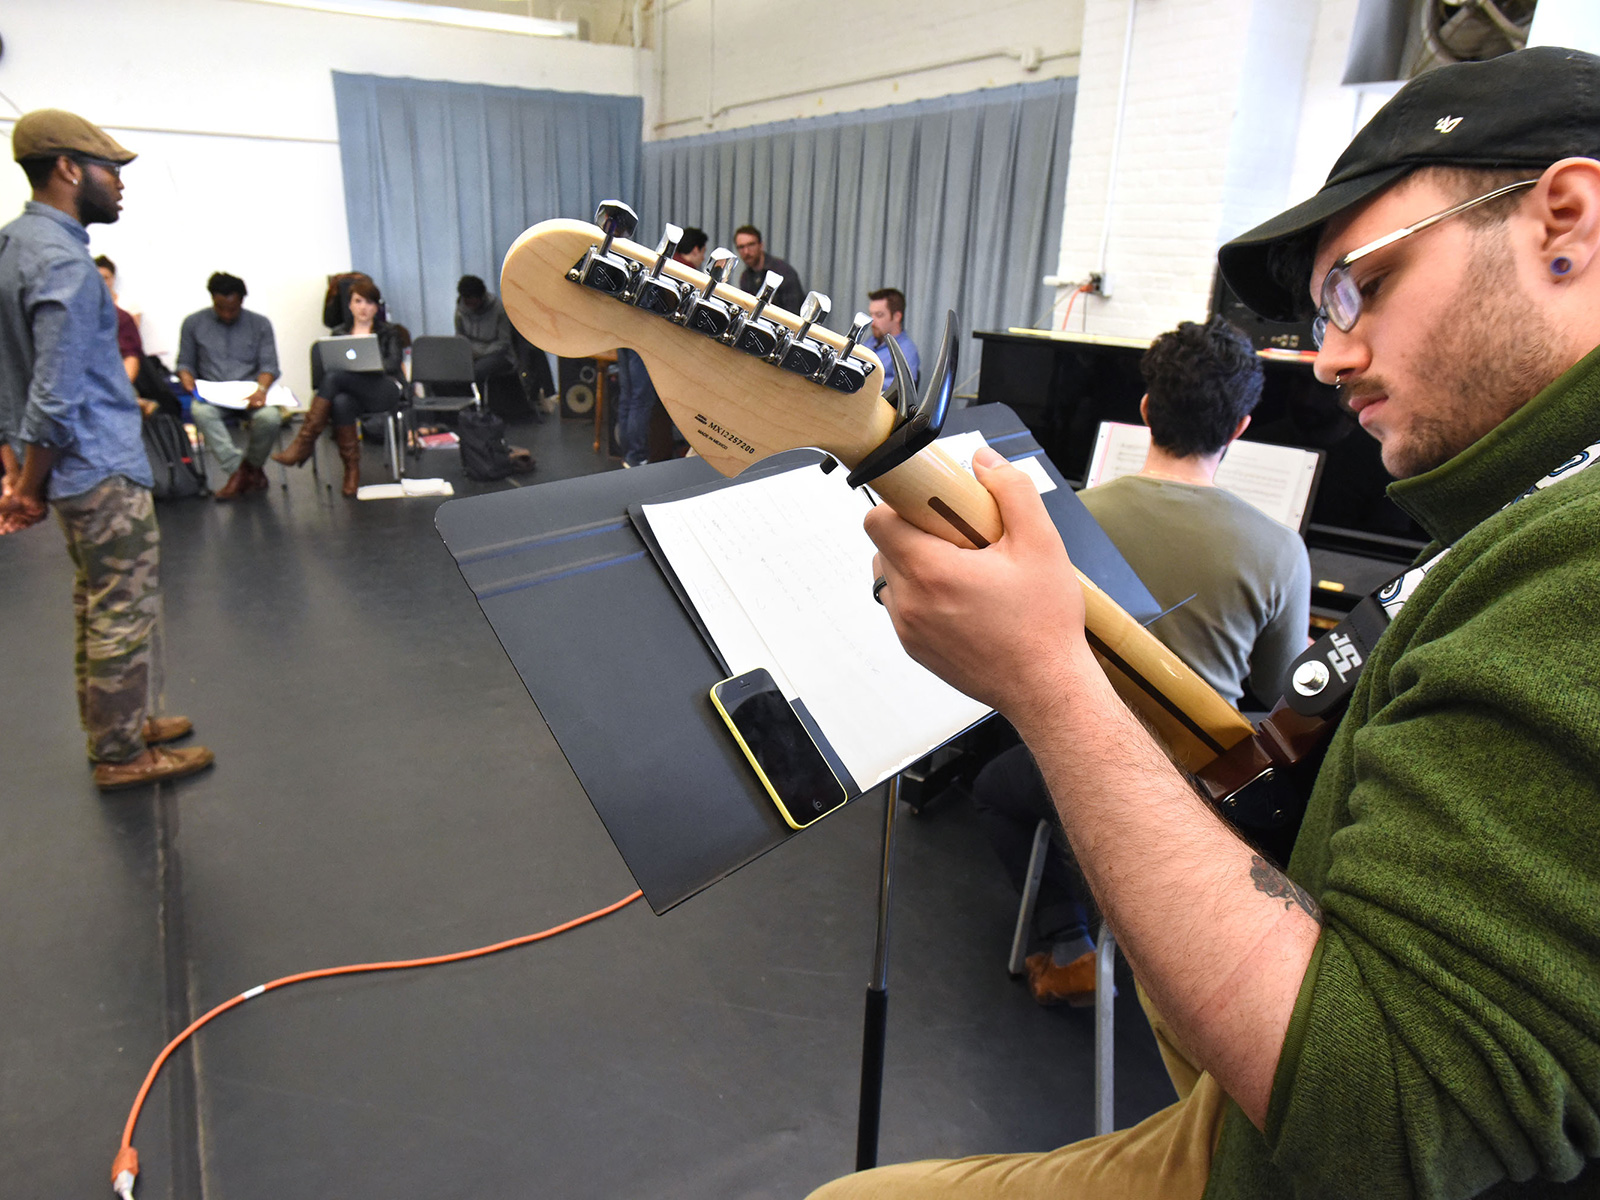 The sitzprobe rehearsal for <em/>The Children by Philip Howze ('15) in the Julie Harris Room at 149 York, Room 109.